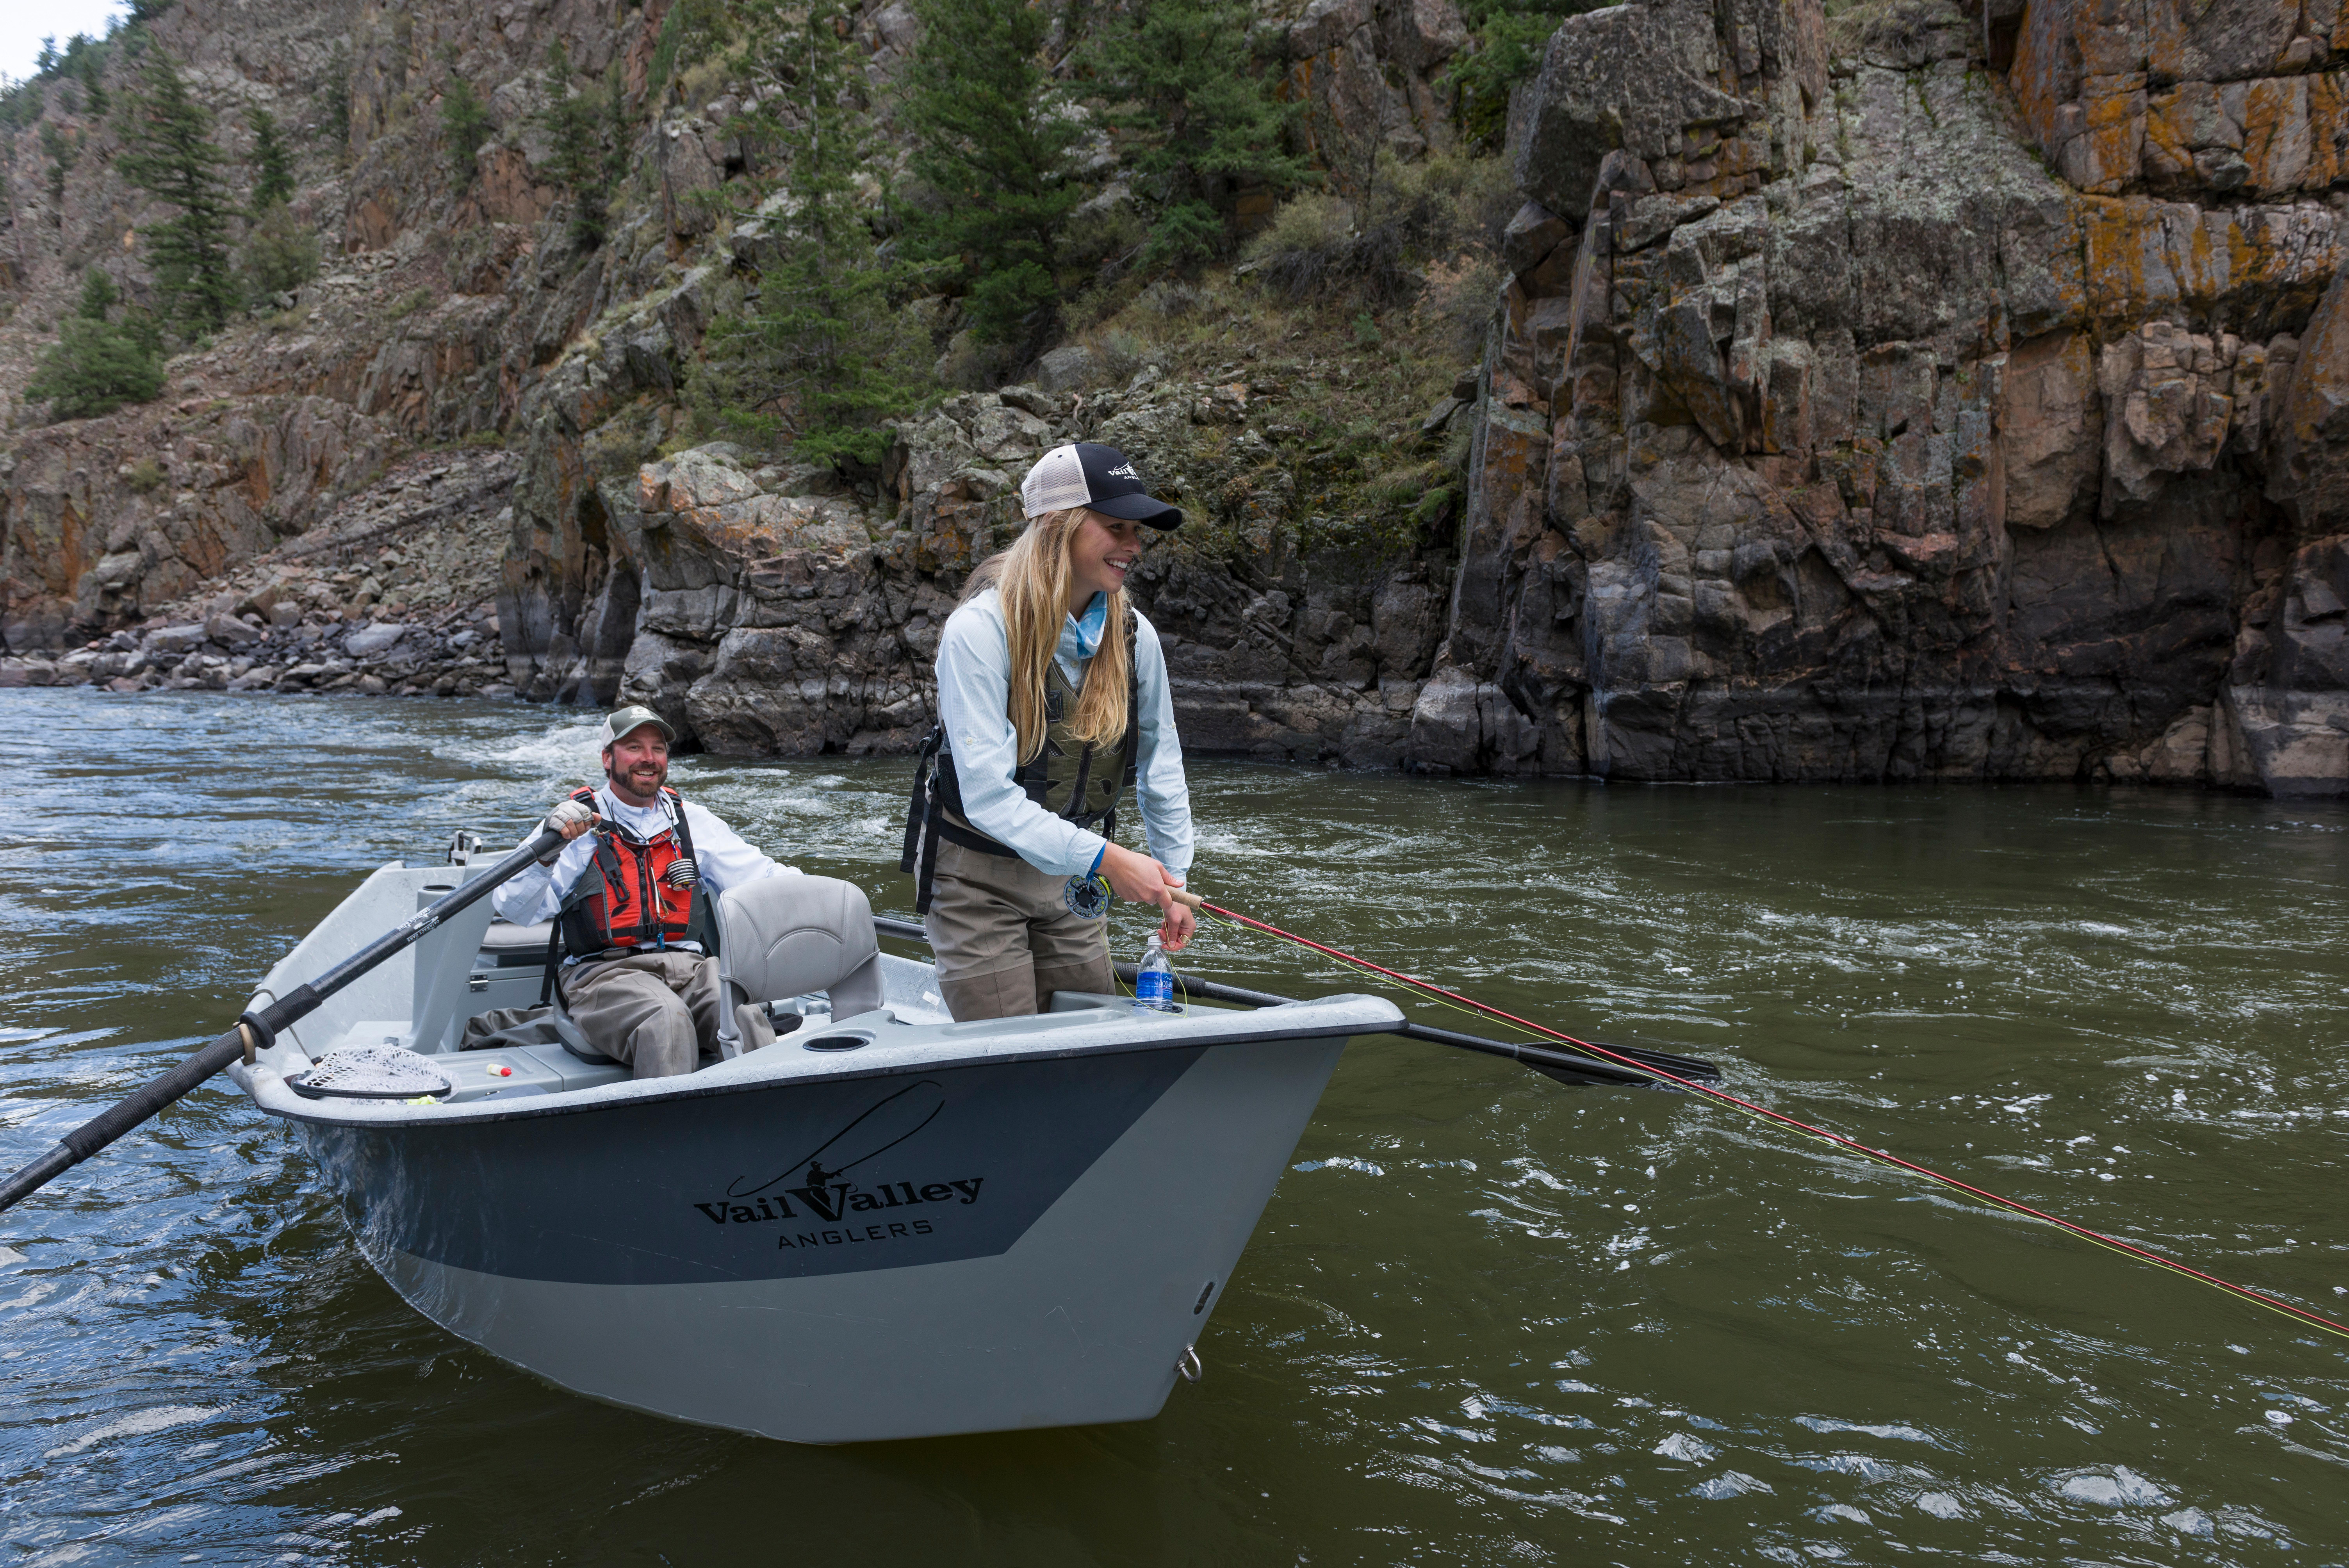 Vail Valley Anglers: Full Day Float Trip